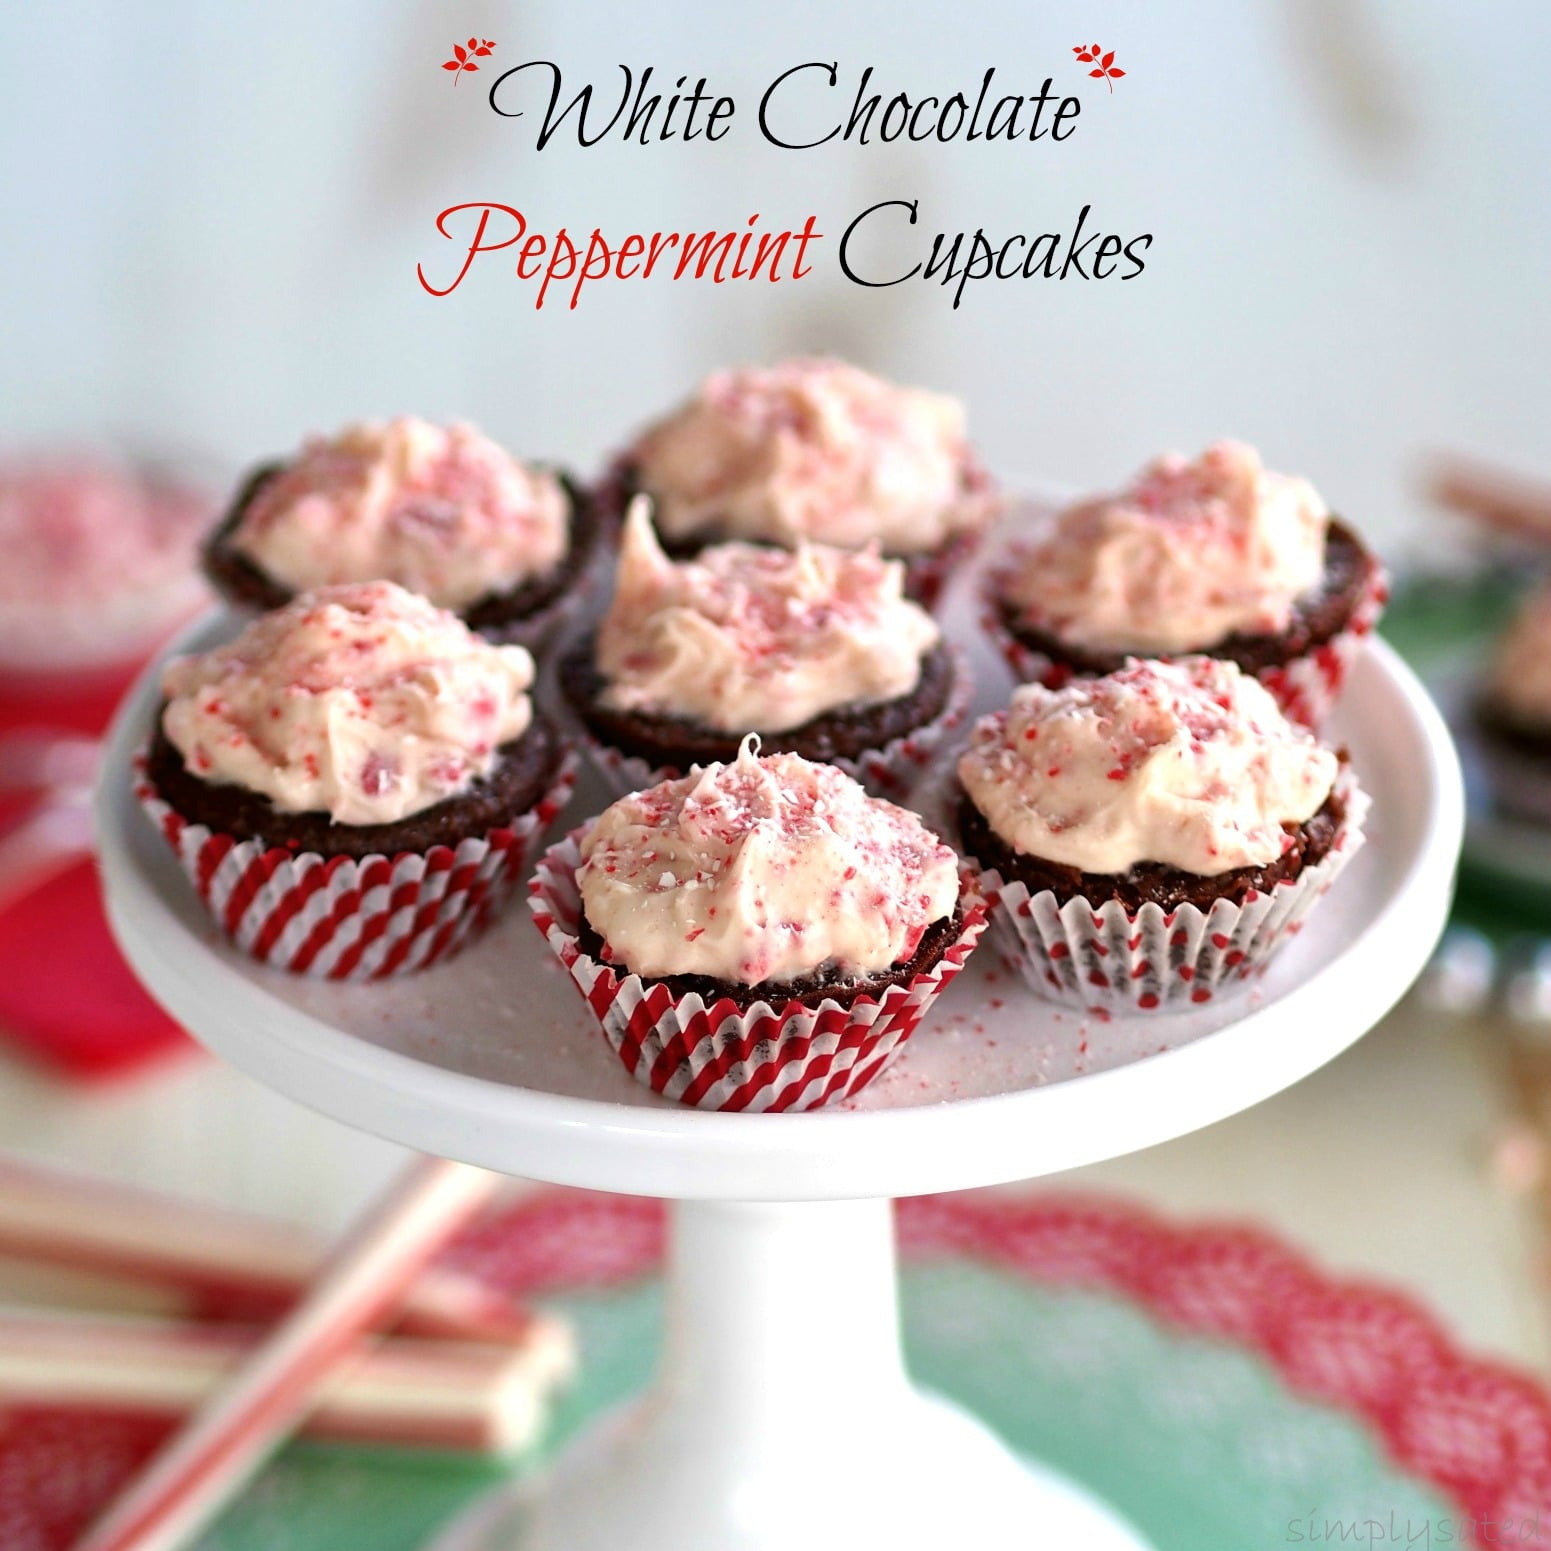 ... chocolate cupcakes with easy white chocolate, peppermint icing